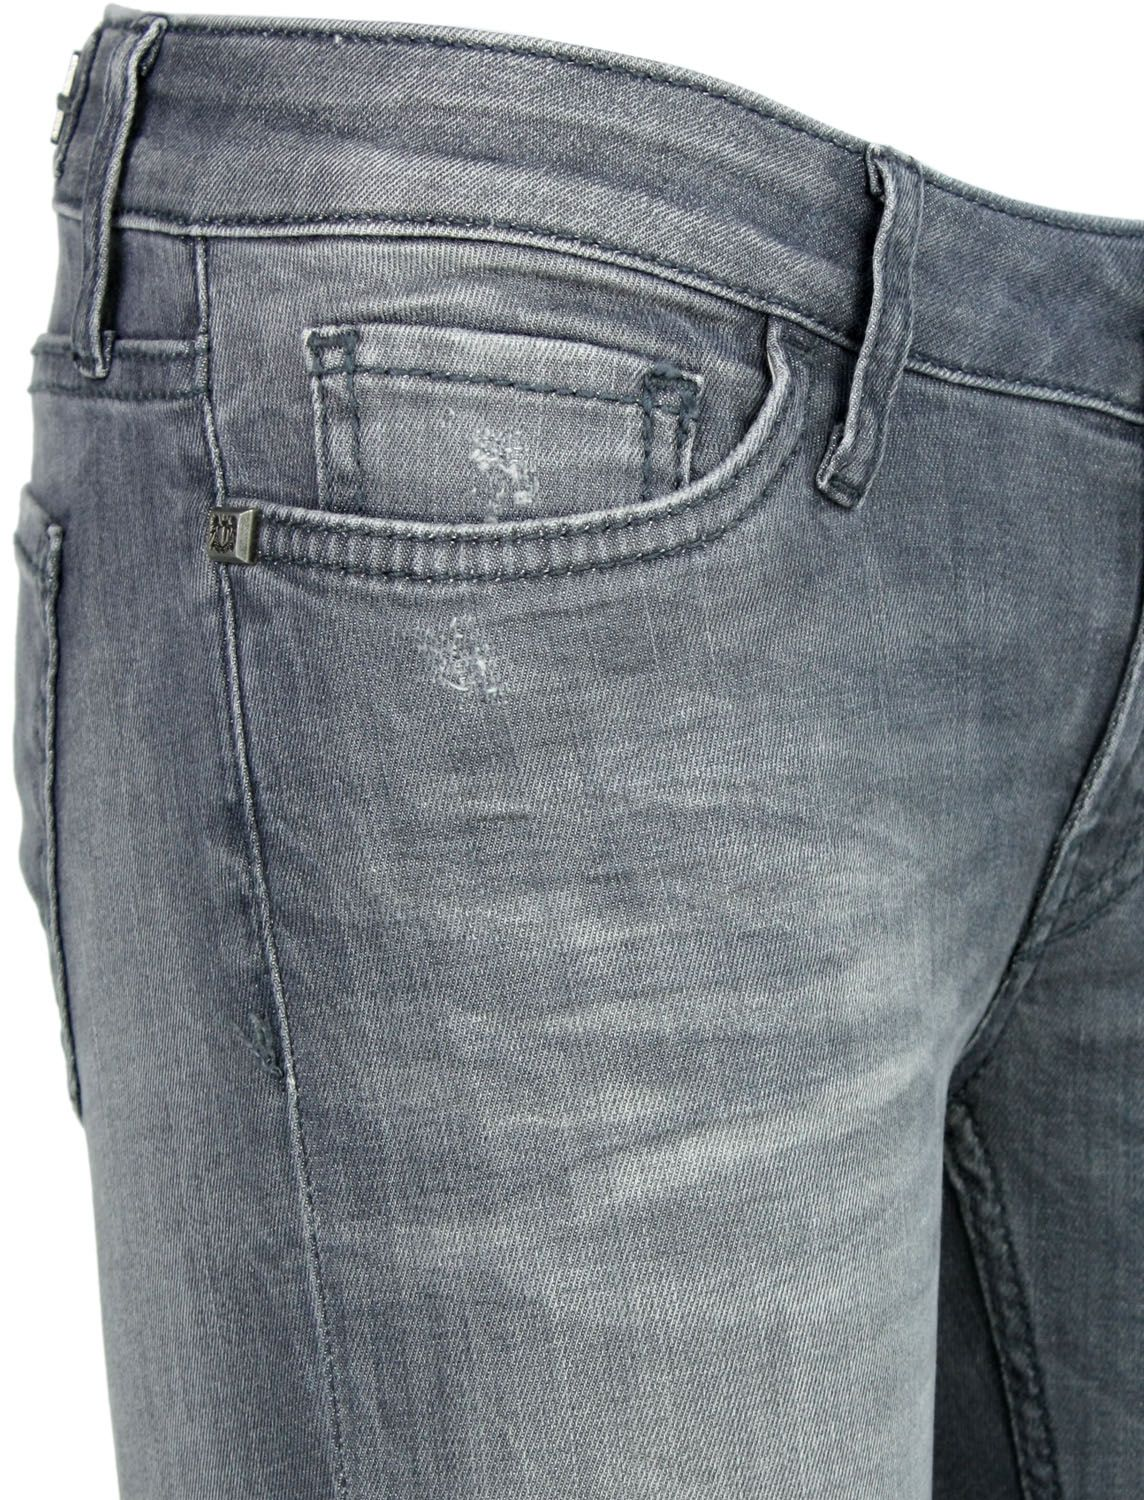 Rich   Royal Jeans Super Skinny Grey - fettebeute Online Shop 3b69a584b7